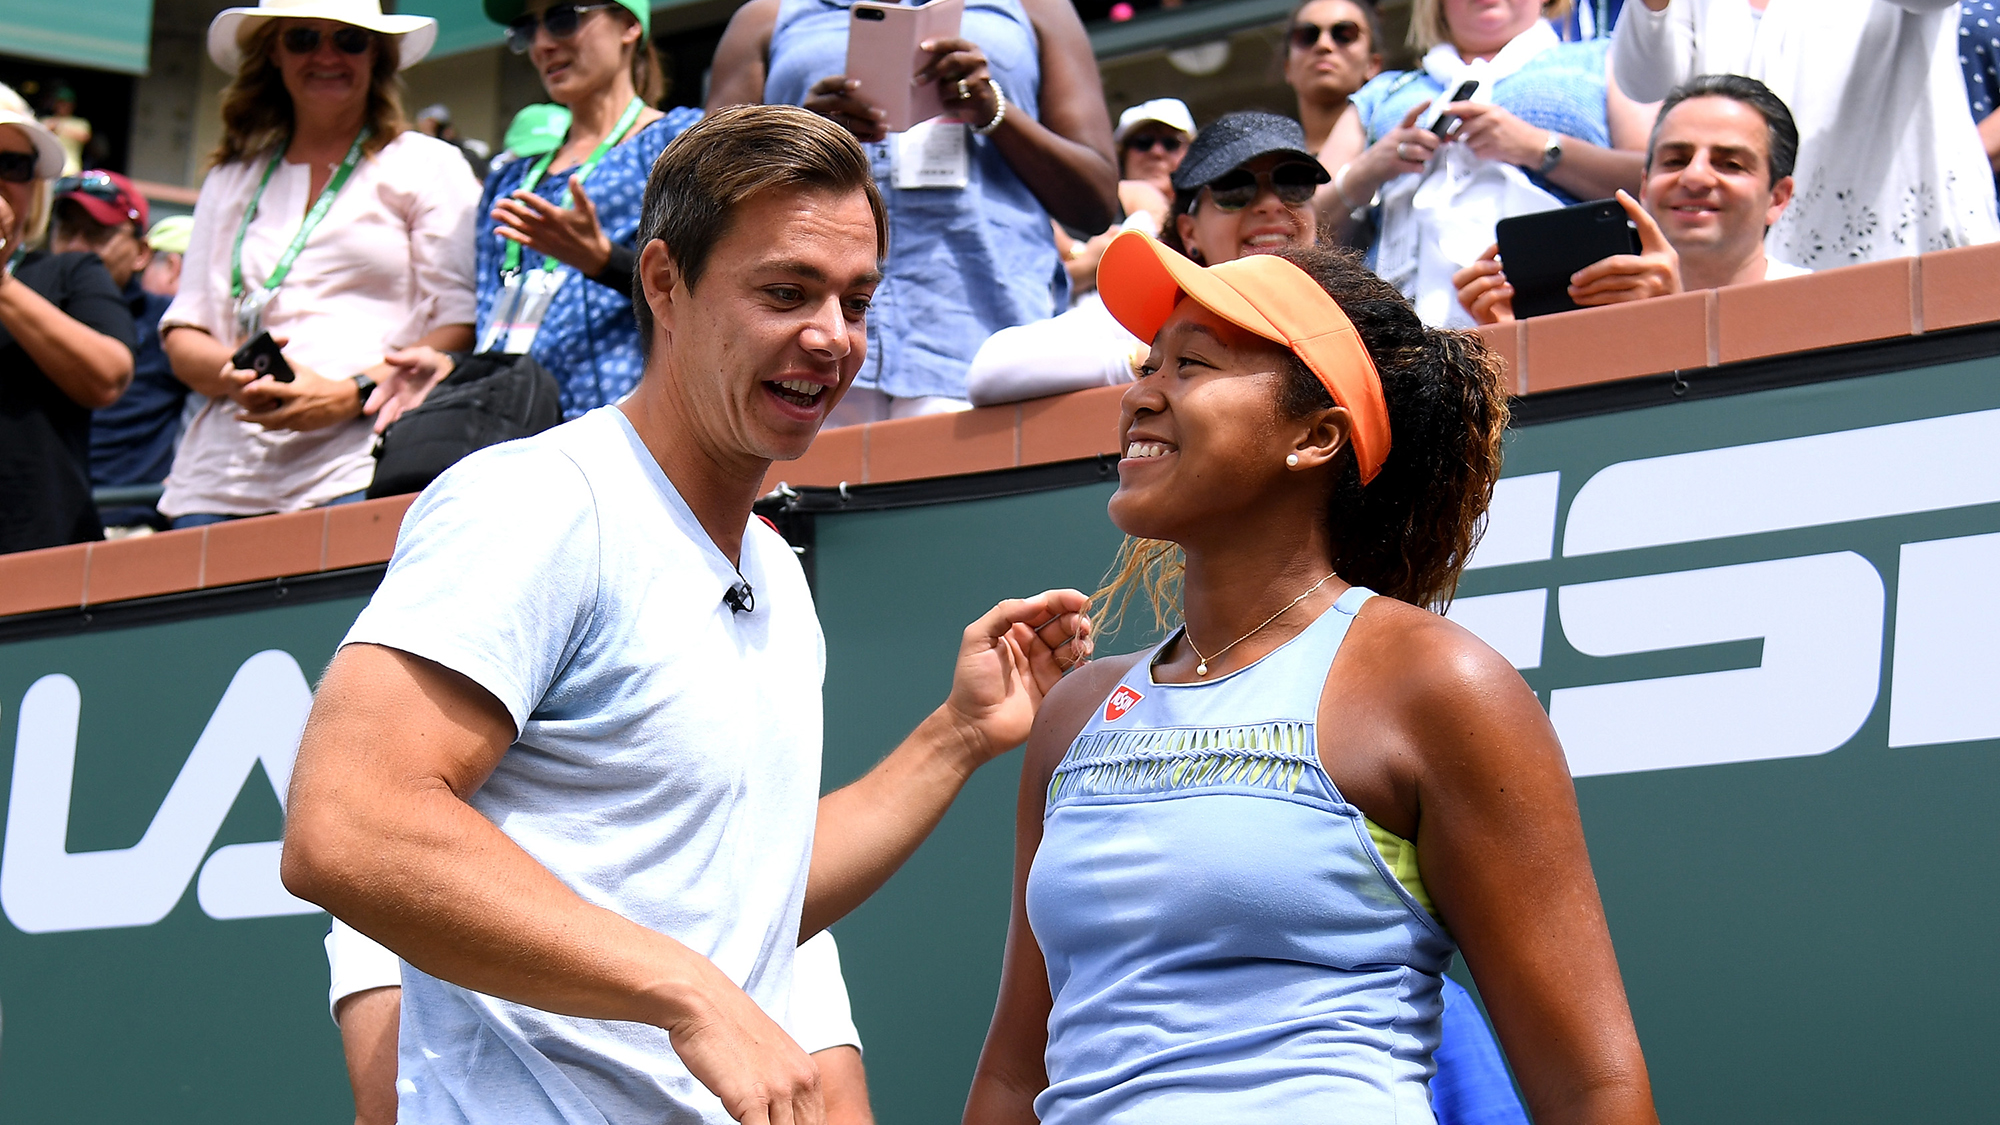 Mailbag  Why Would Naomi Osaka Part Ways With Her Coach After So Much  Success  d5575763714